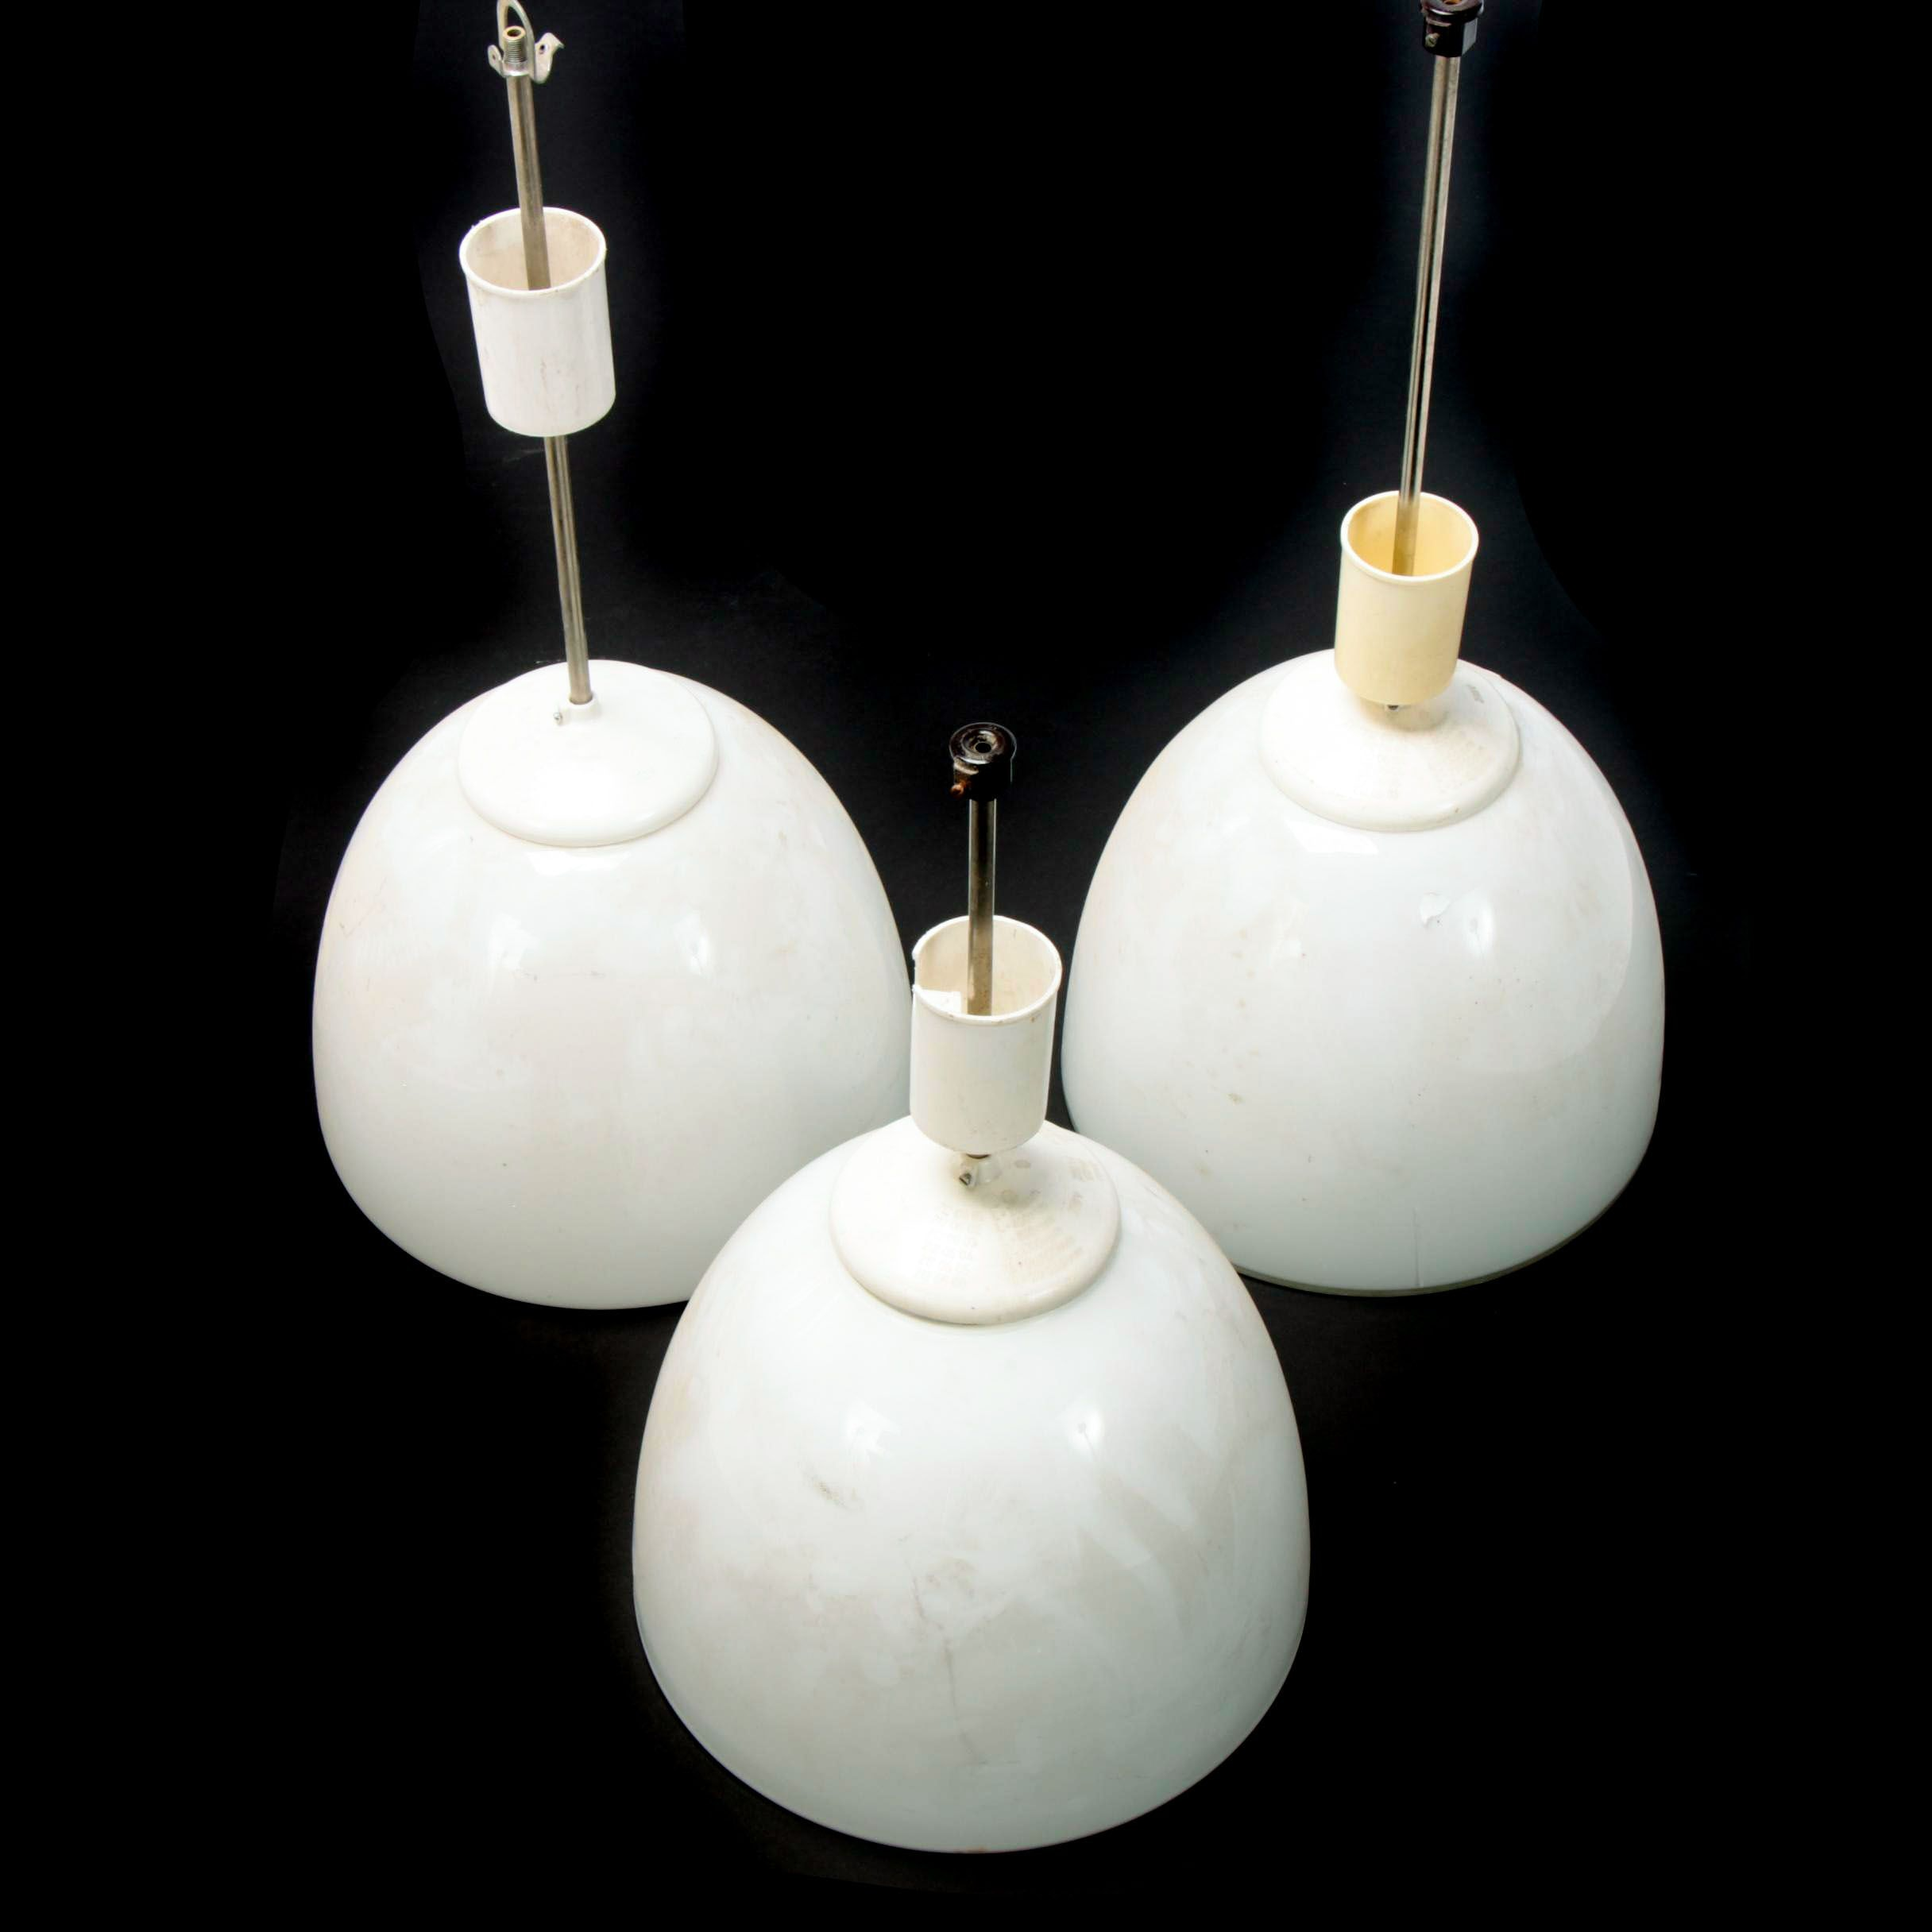 Industrial Opaline Glass Flower Pendant Lights, Late 20th Century